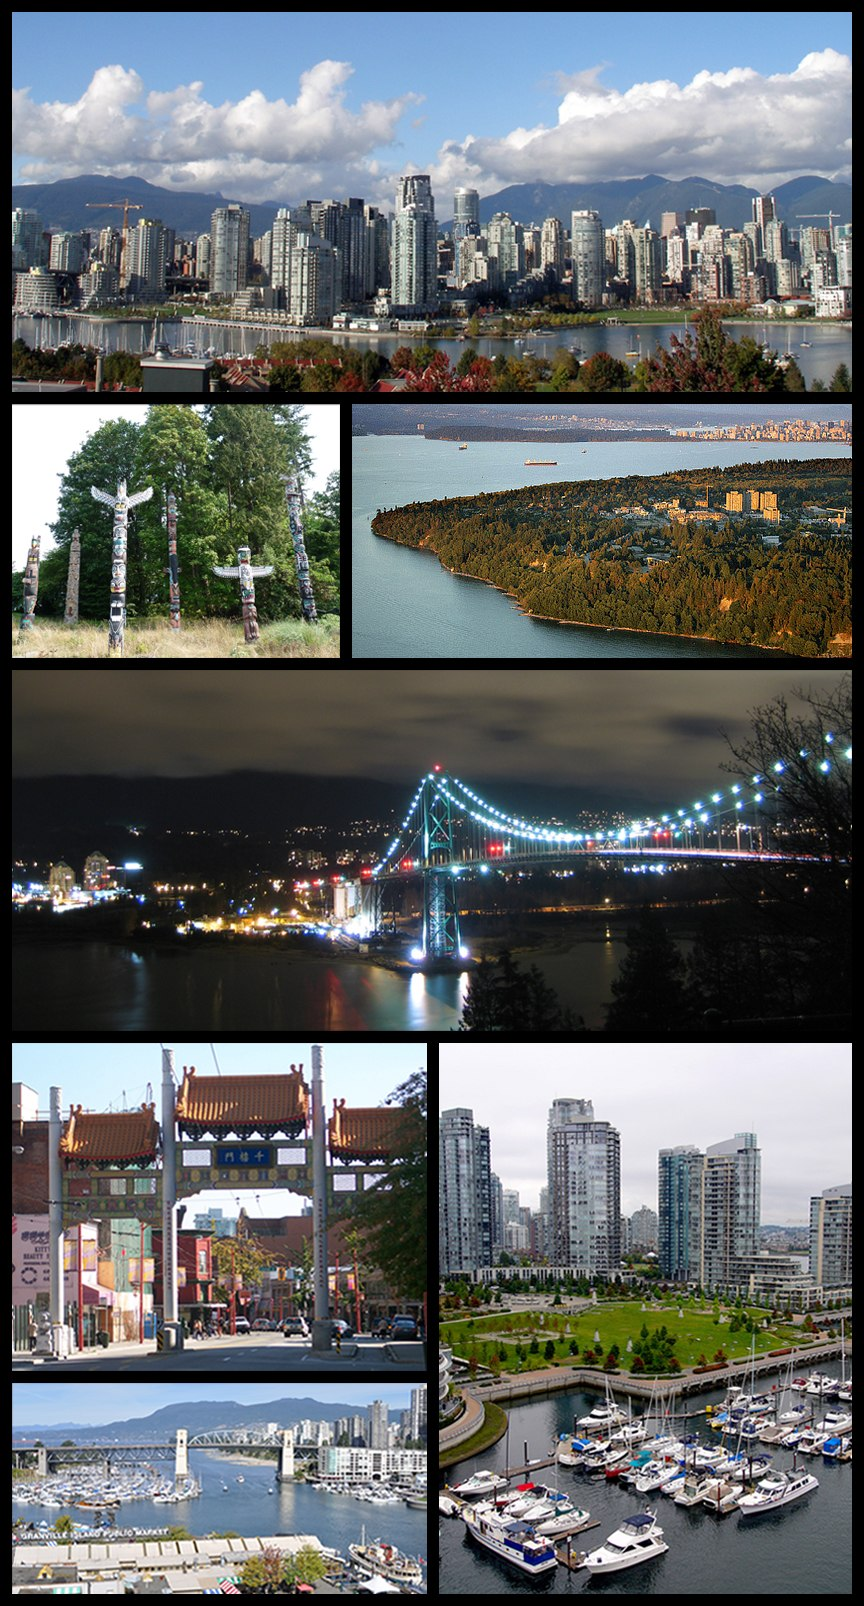 Clockwise, from top: Downtown from False Creek, the University of British Columbia, the Lions Gate Bridge, George Wainborn Park and False Creek from Granville Street Bridge, the Burrard Street Bridge, Chinatown's Millenium Gate, totem poles in Stanley Park